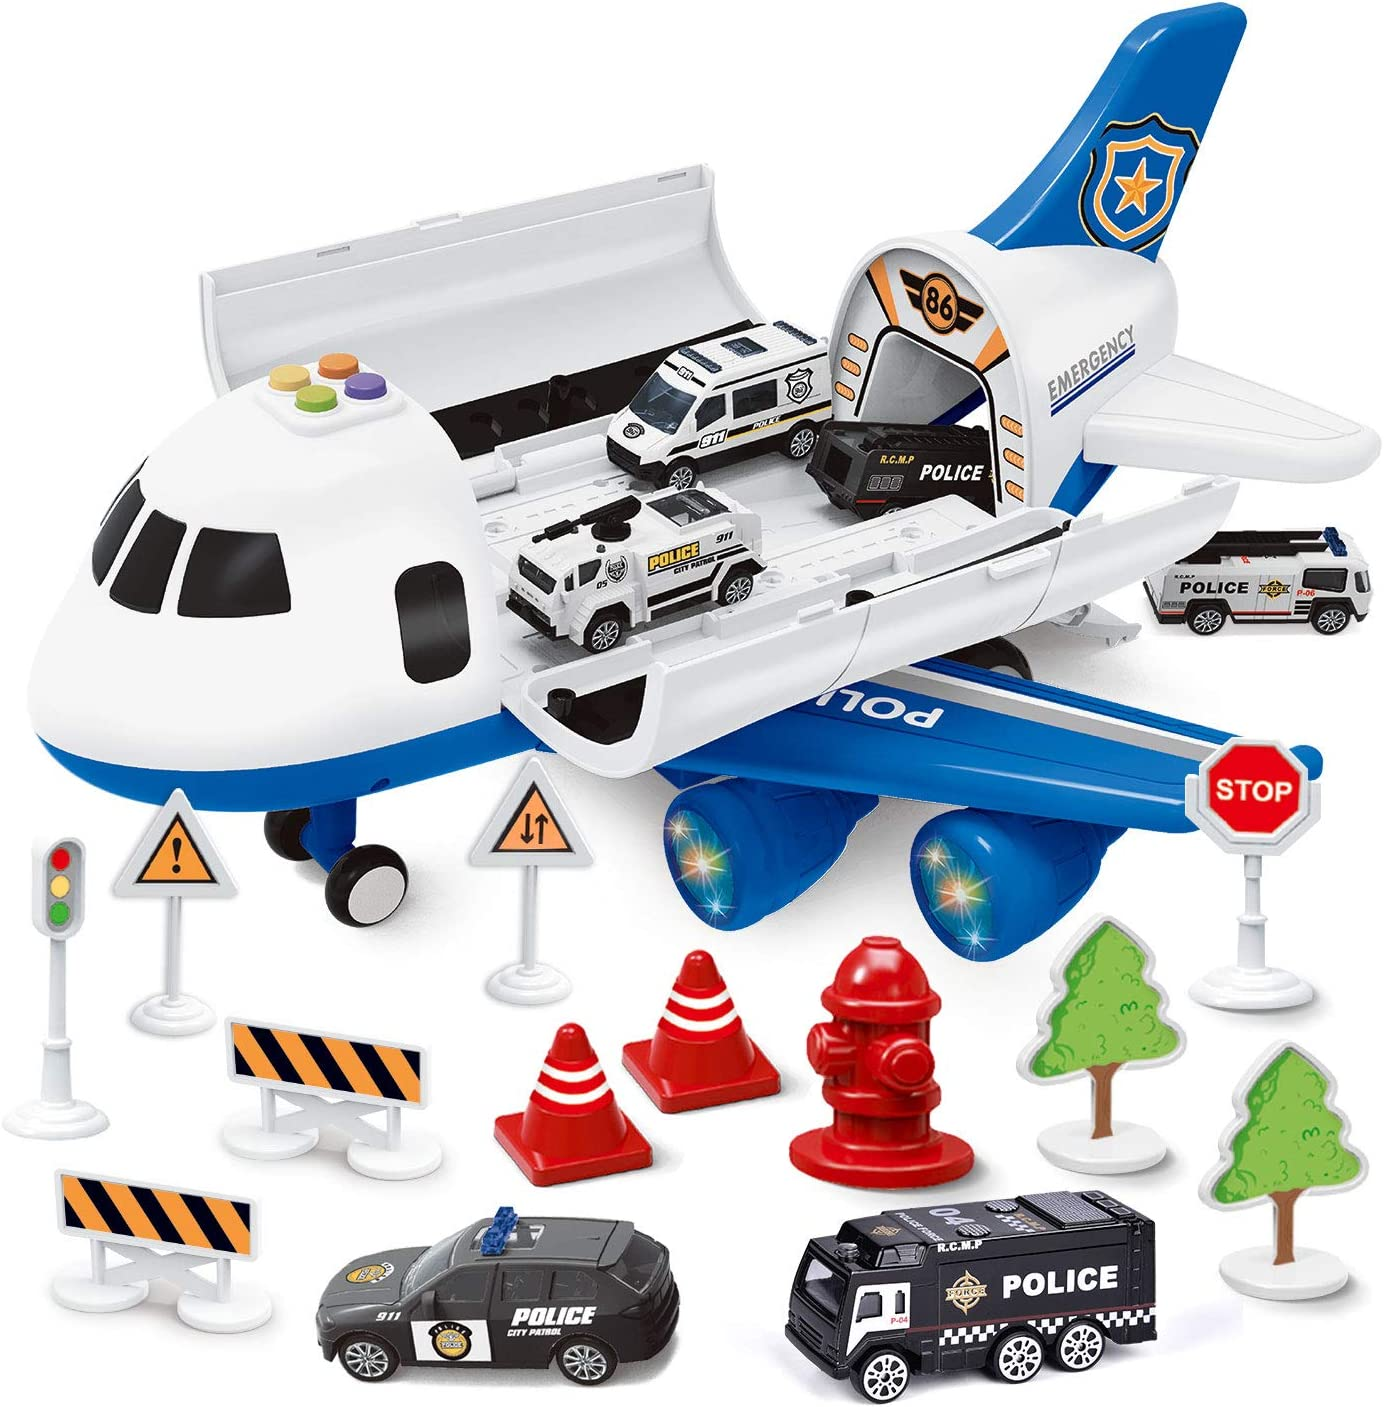 FUN LITTLE TOYS Electronic Airplane Toys with Lights /& Music Construction Toys for Boys Including 6 Pieces Die cast Construction Vehicles Set